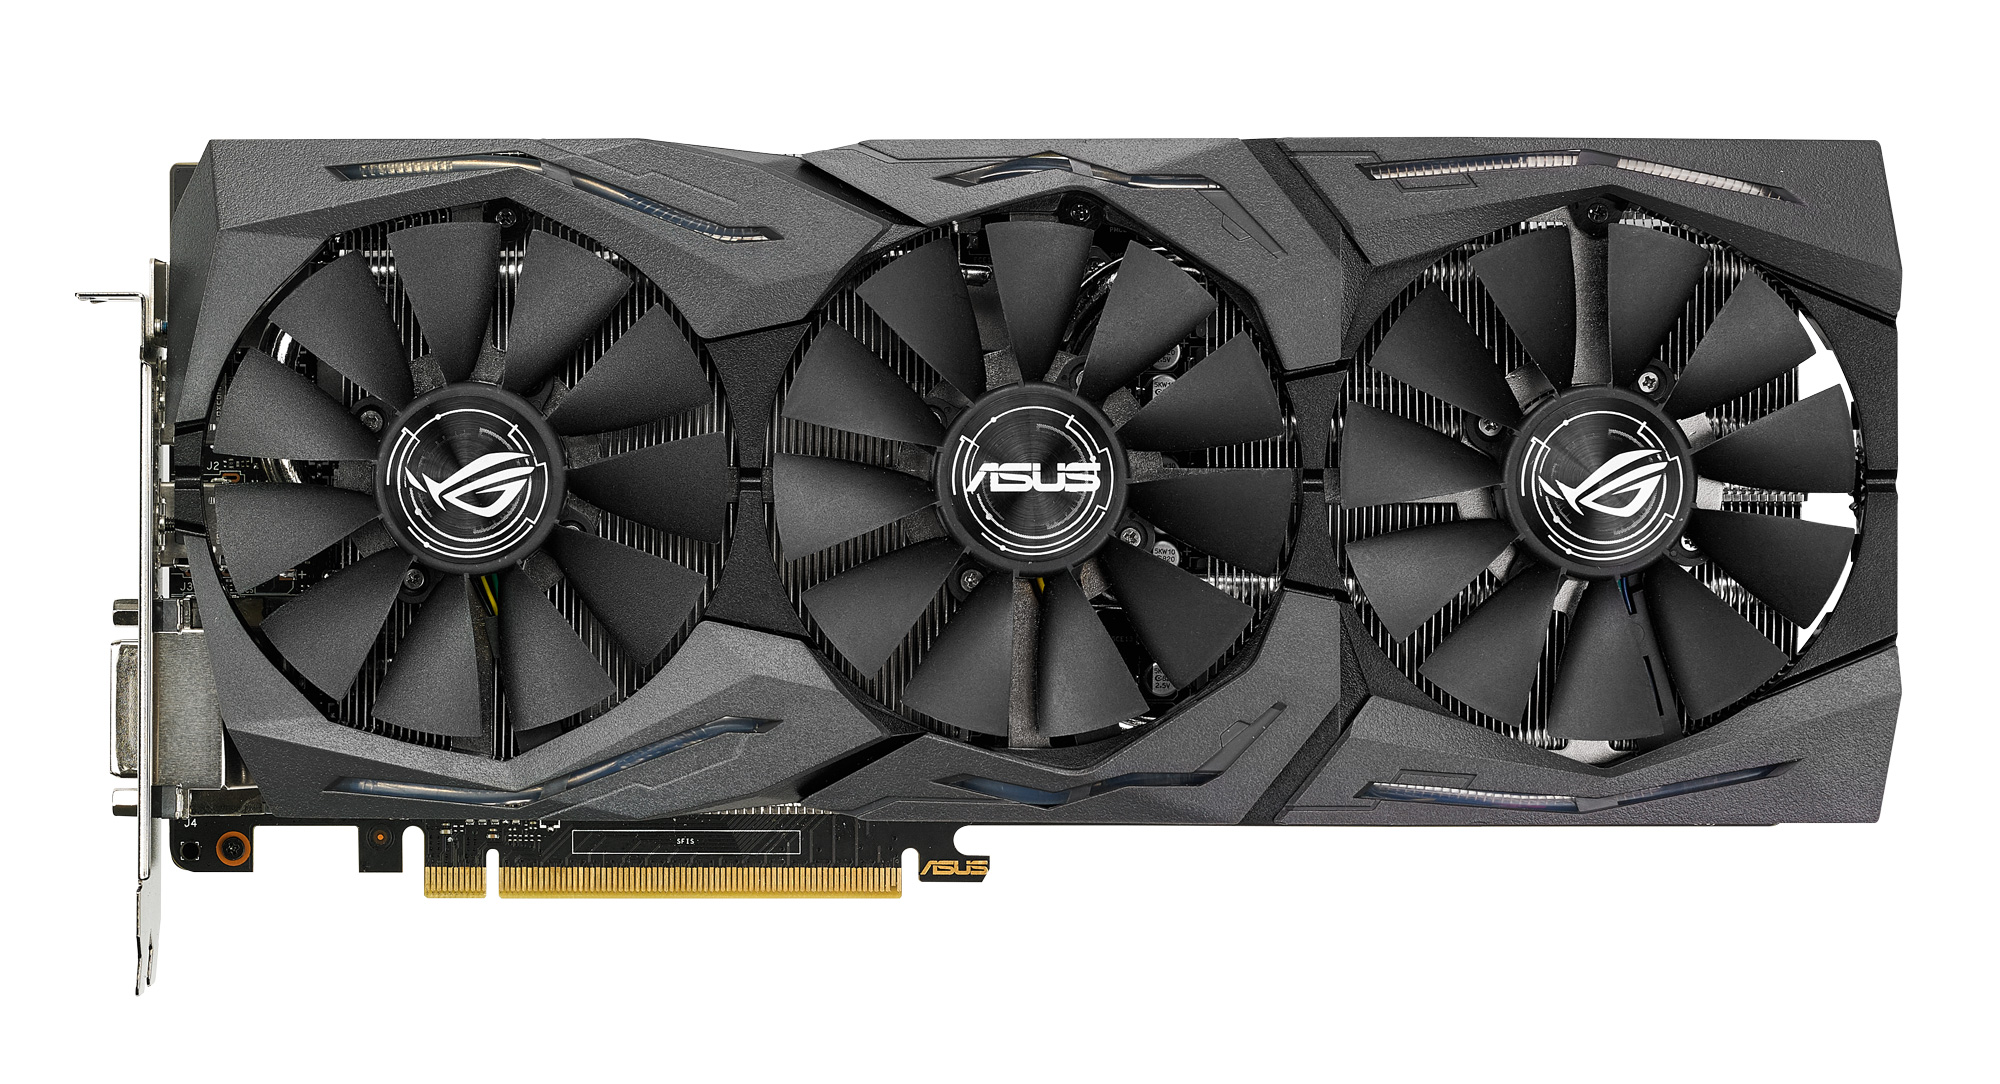 The GeForce GTX 1060 Founders Edition & ASUS Strix GTX 1060 Review